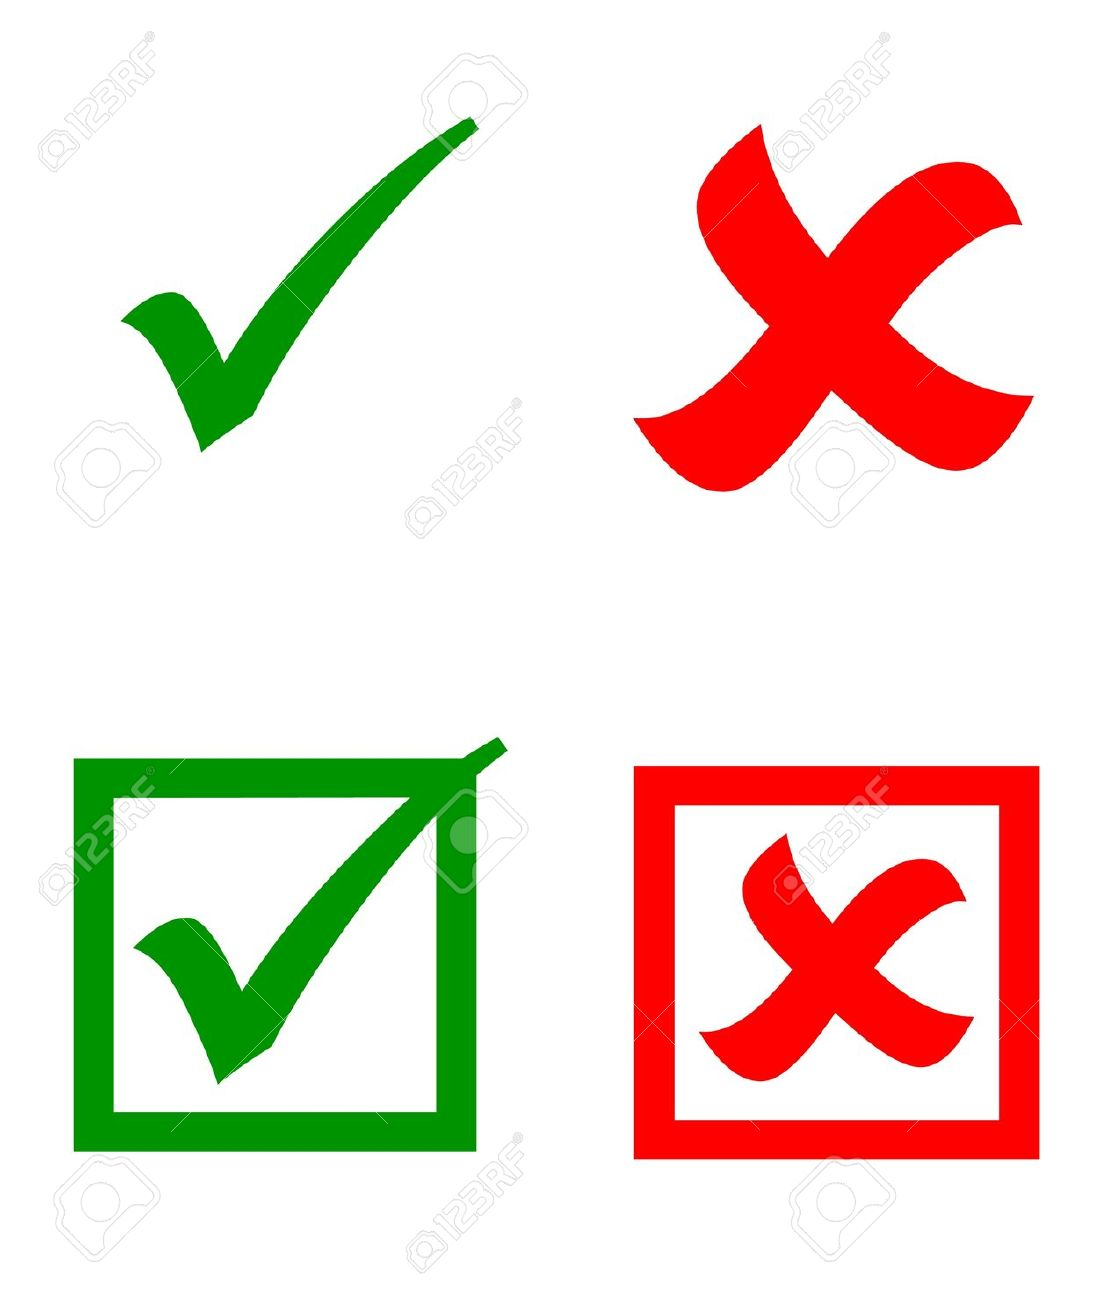 Check Mark Stickers Stock Photo Picture And Royalty Free Image